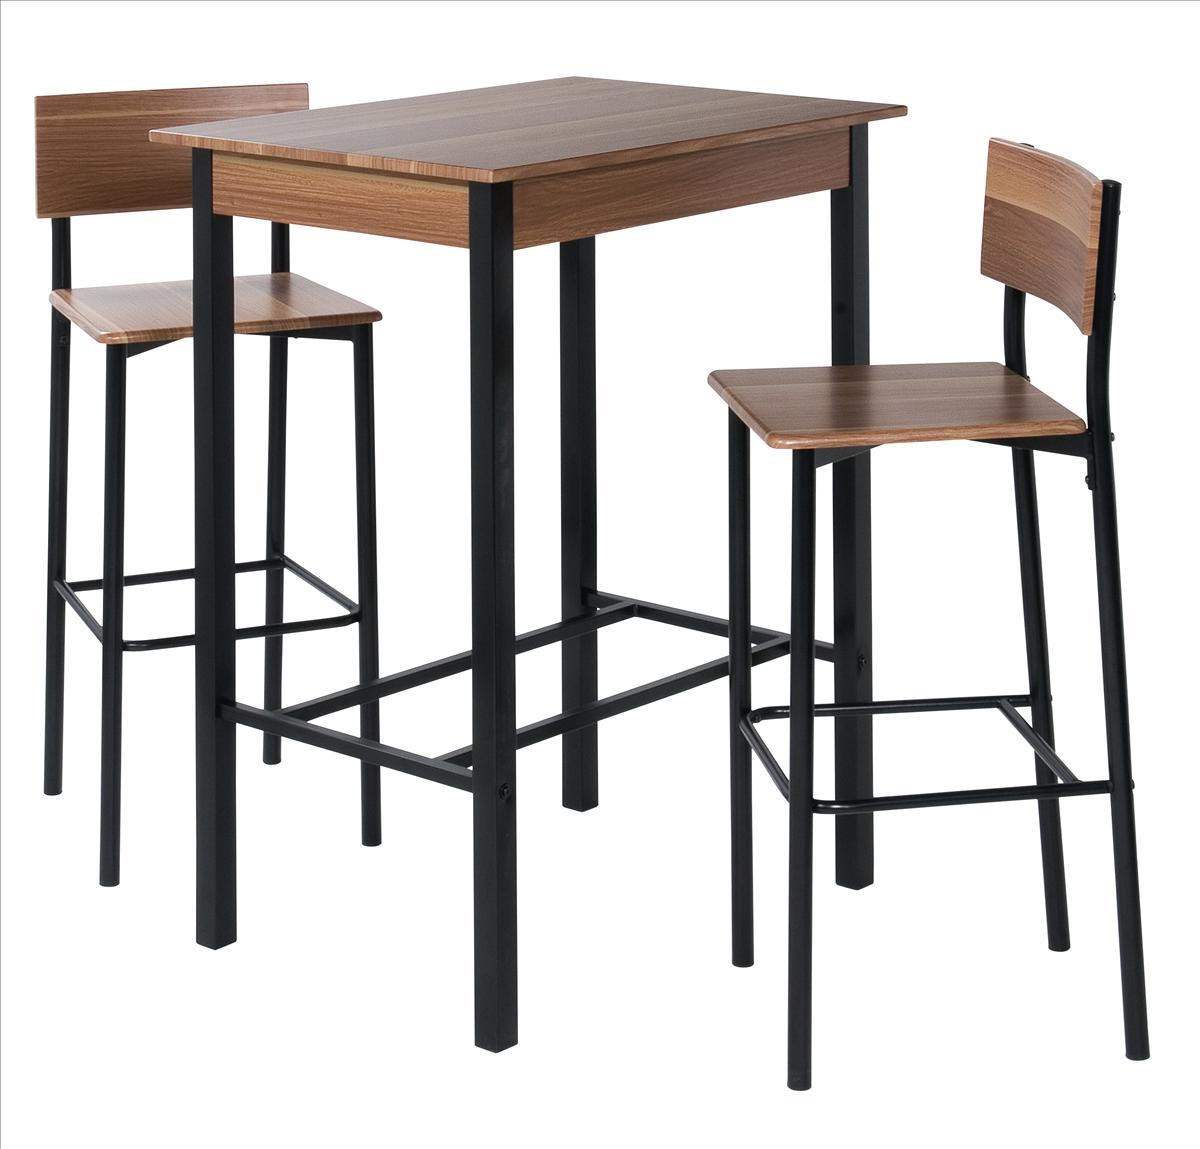 barset bar set mit 2 barhocker und 1 bartisch bistrotisch ricarda ebay. Black Bedroom Furniture Sets. Home Design Ideas